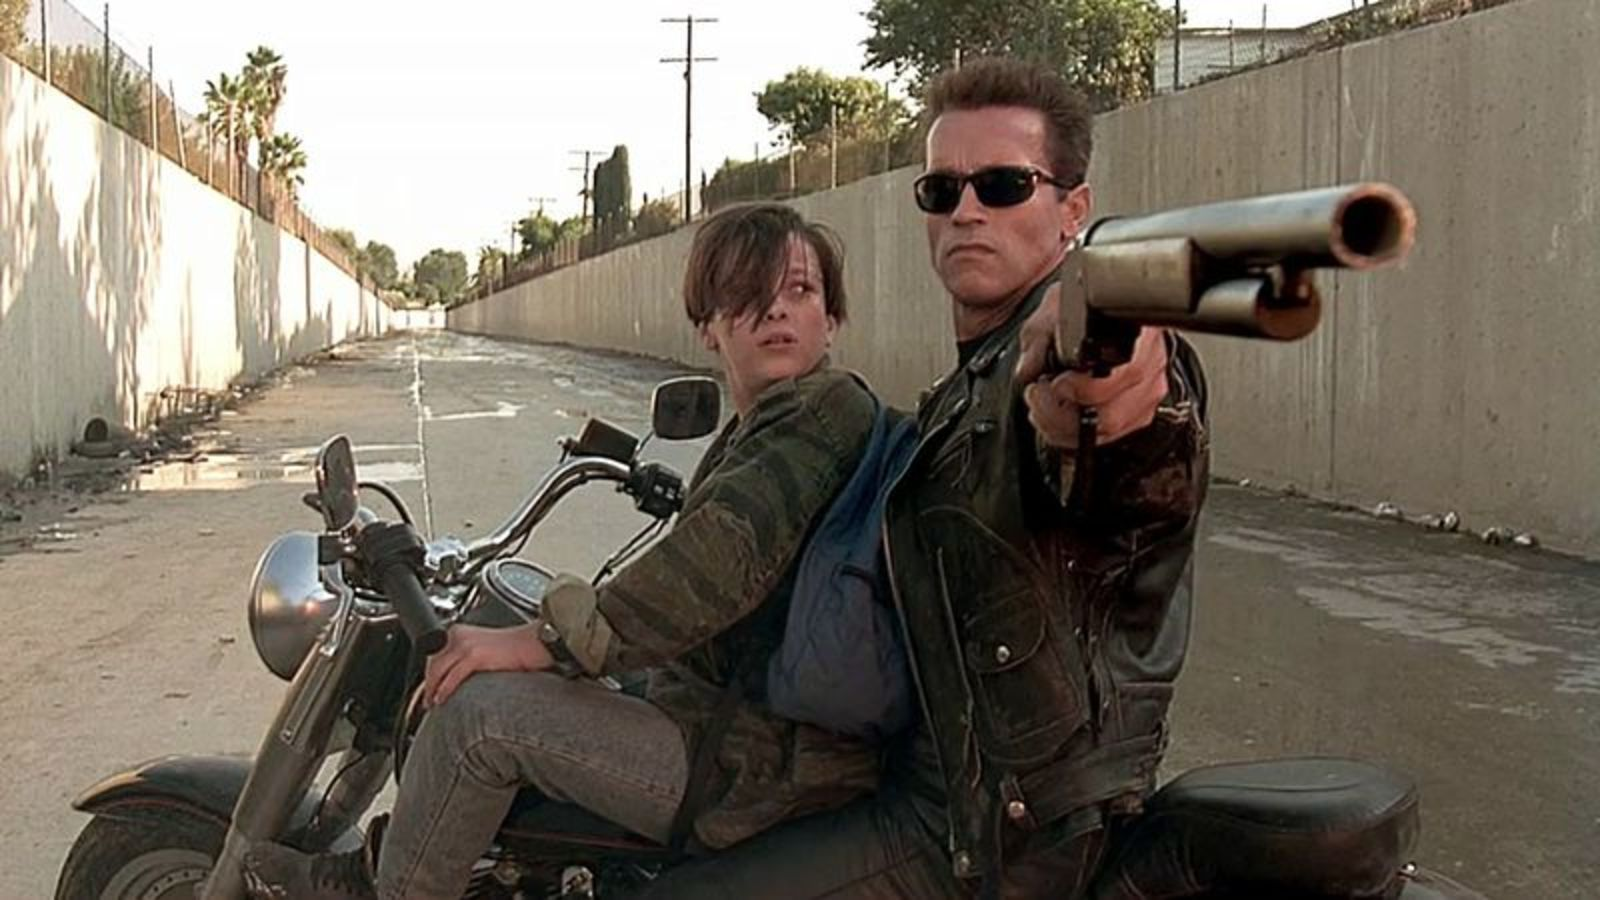 Arnold Schwarzenegger, Edward Furlong in Terminator 2 Judgment Day (1991)